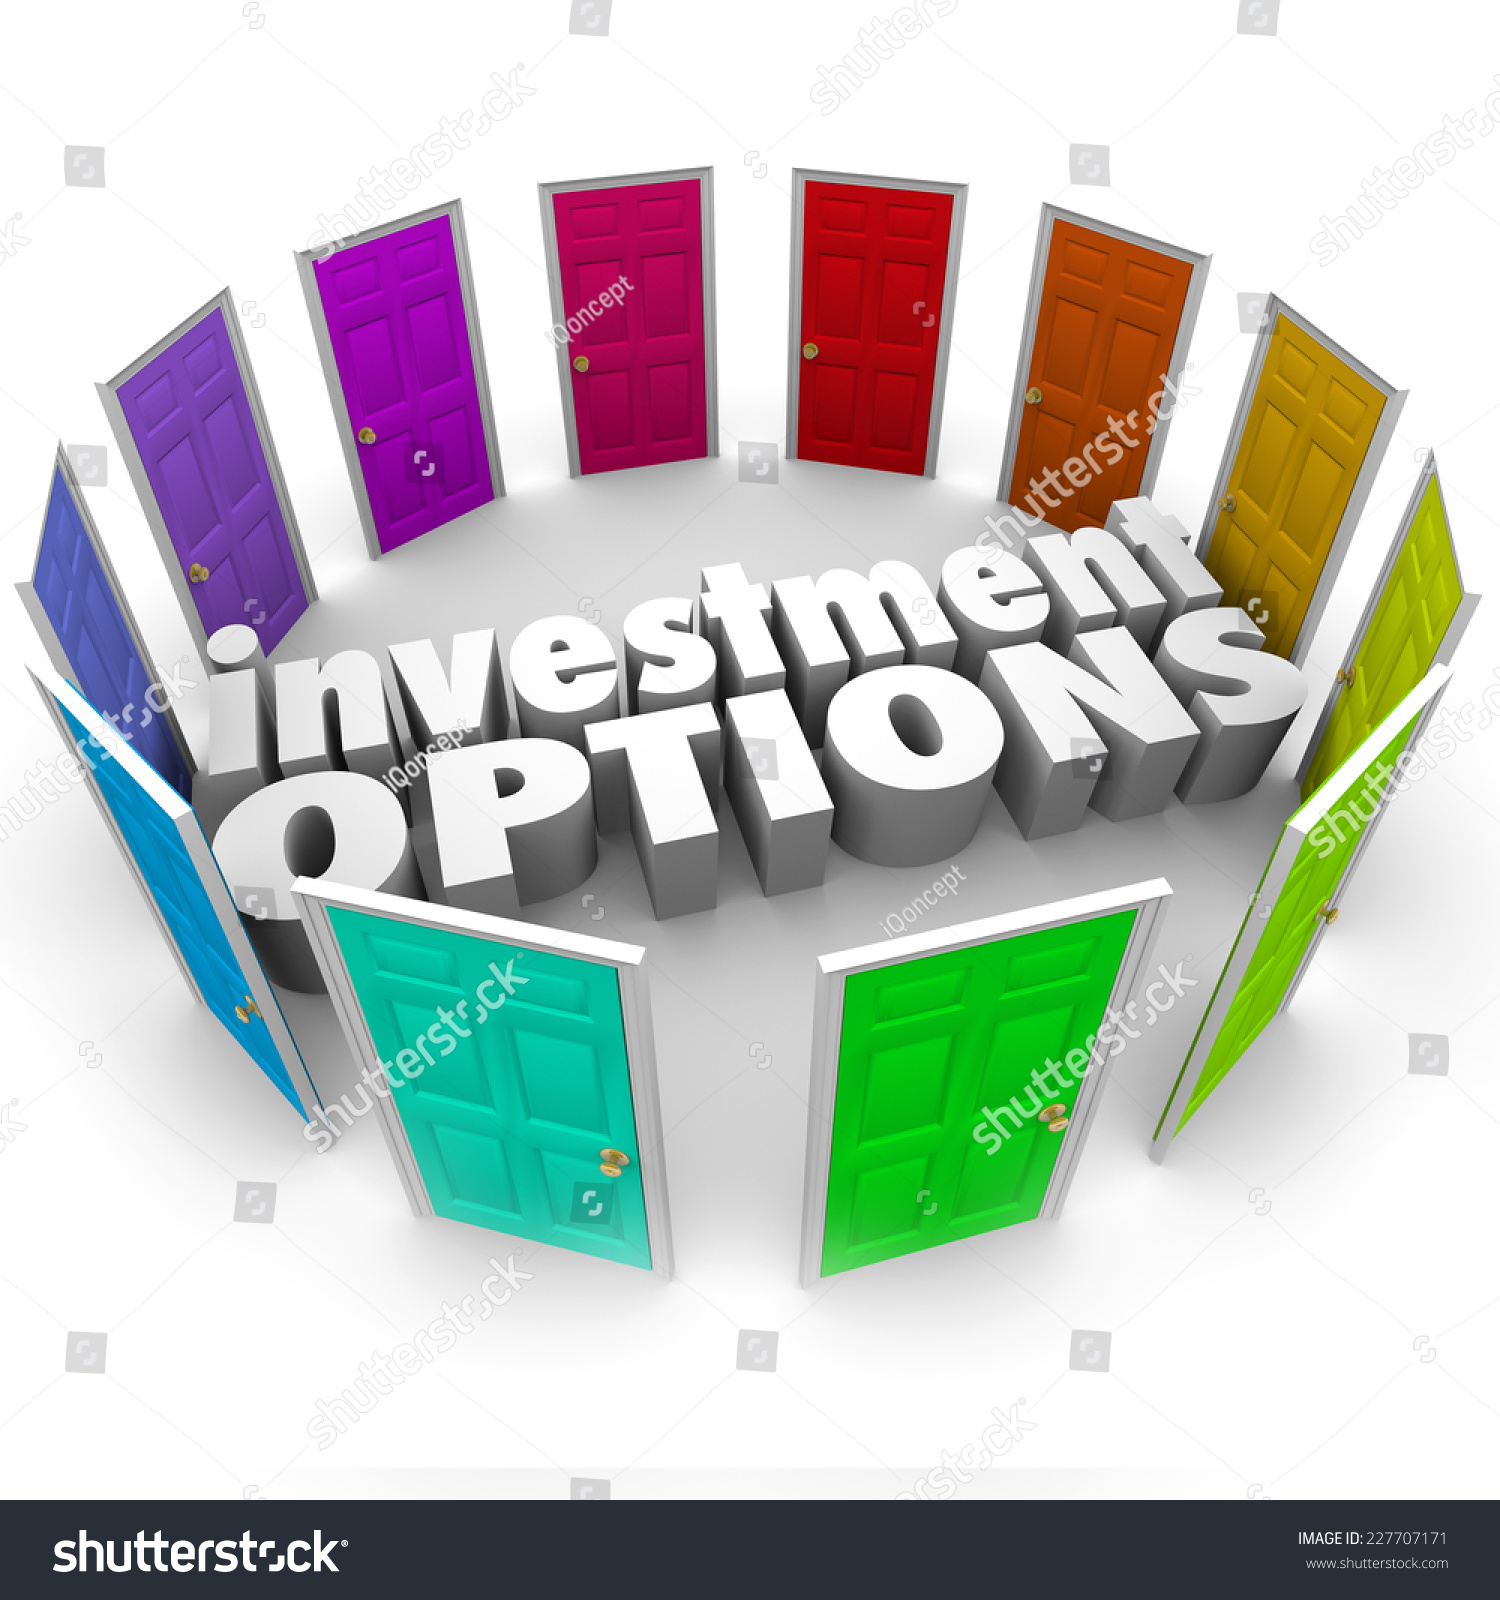 Investment stock options